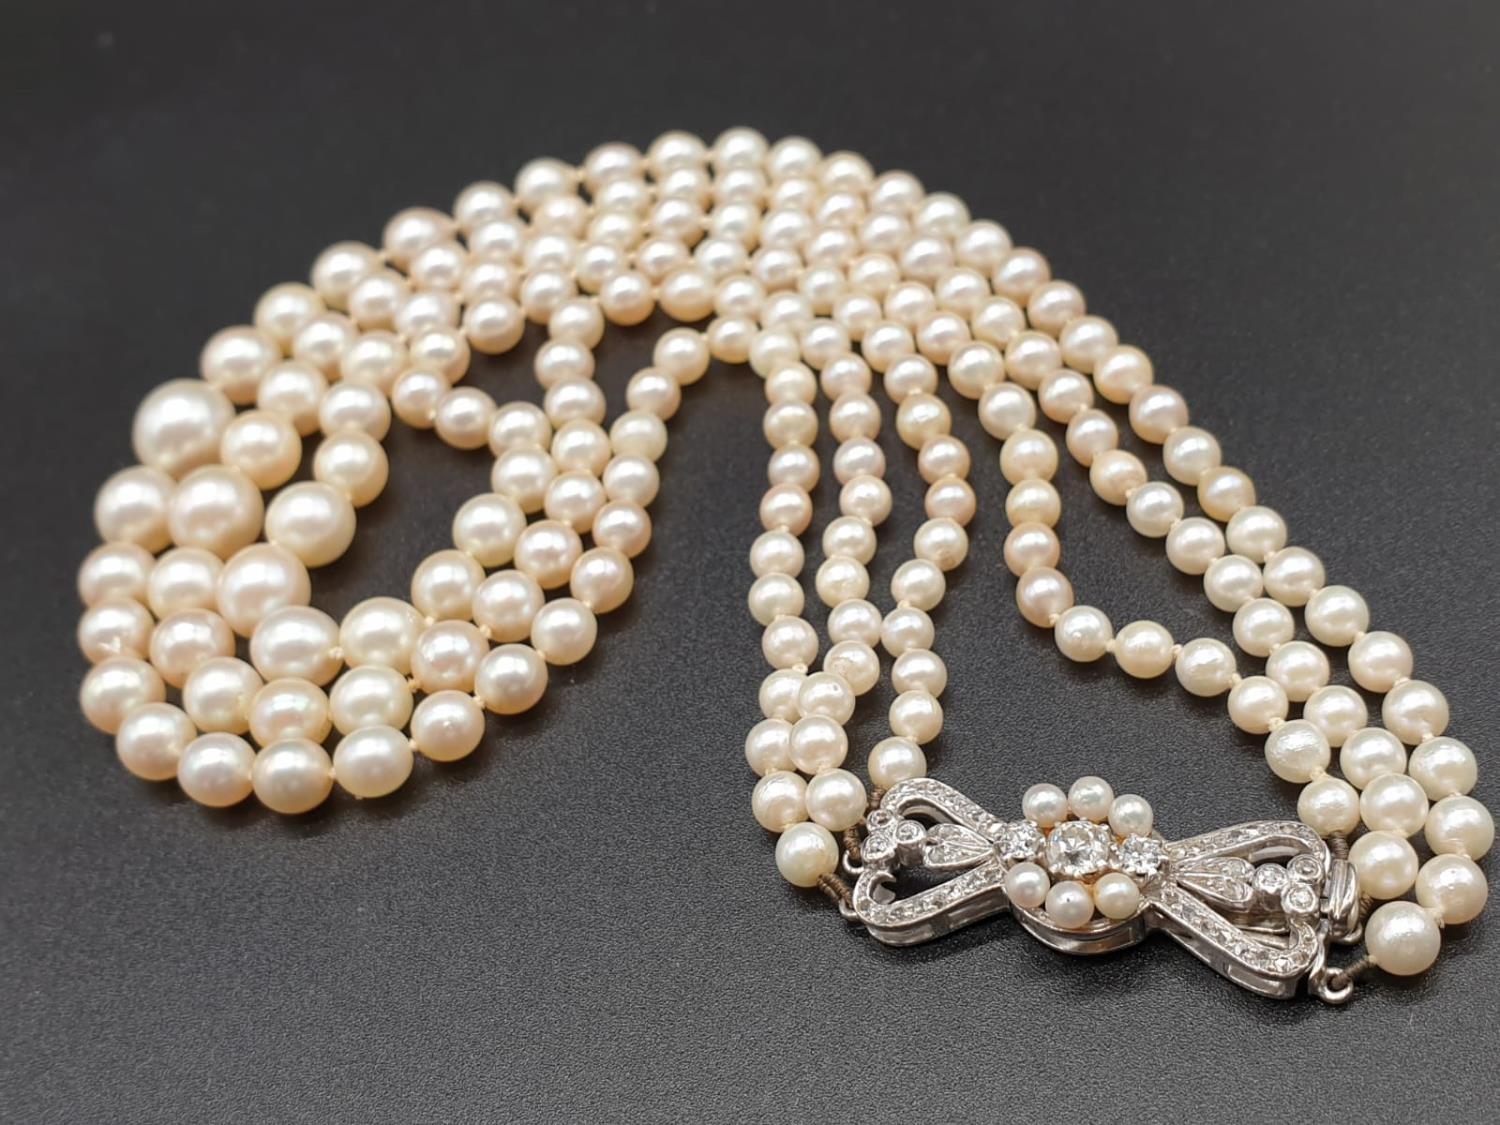 A 3 ROW GRADUATED PEARL NECKLACE WITH PLATINUM AND DIAMOND CLASP 48gms and 18cms in length